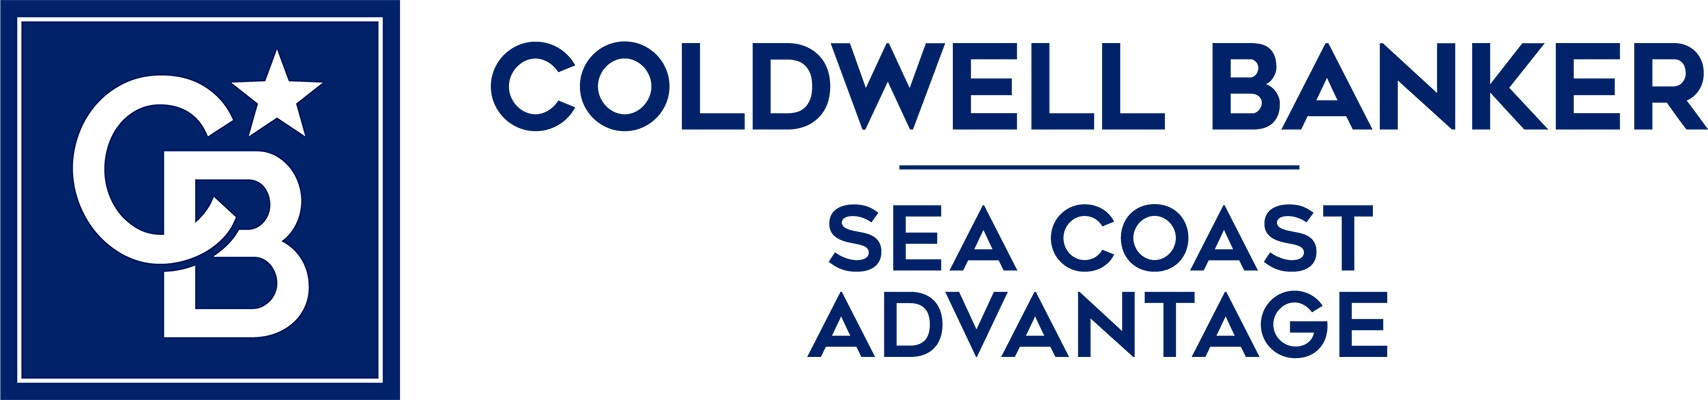 Sandy Smith - Coldwell Banker Sea Coast Advantage Realty